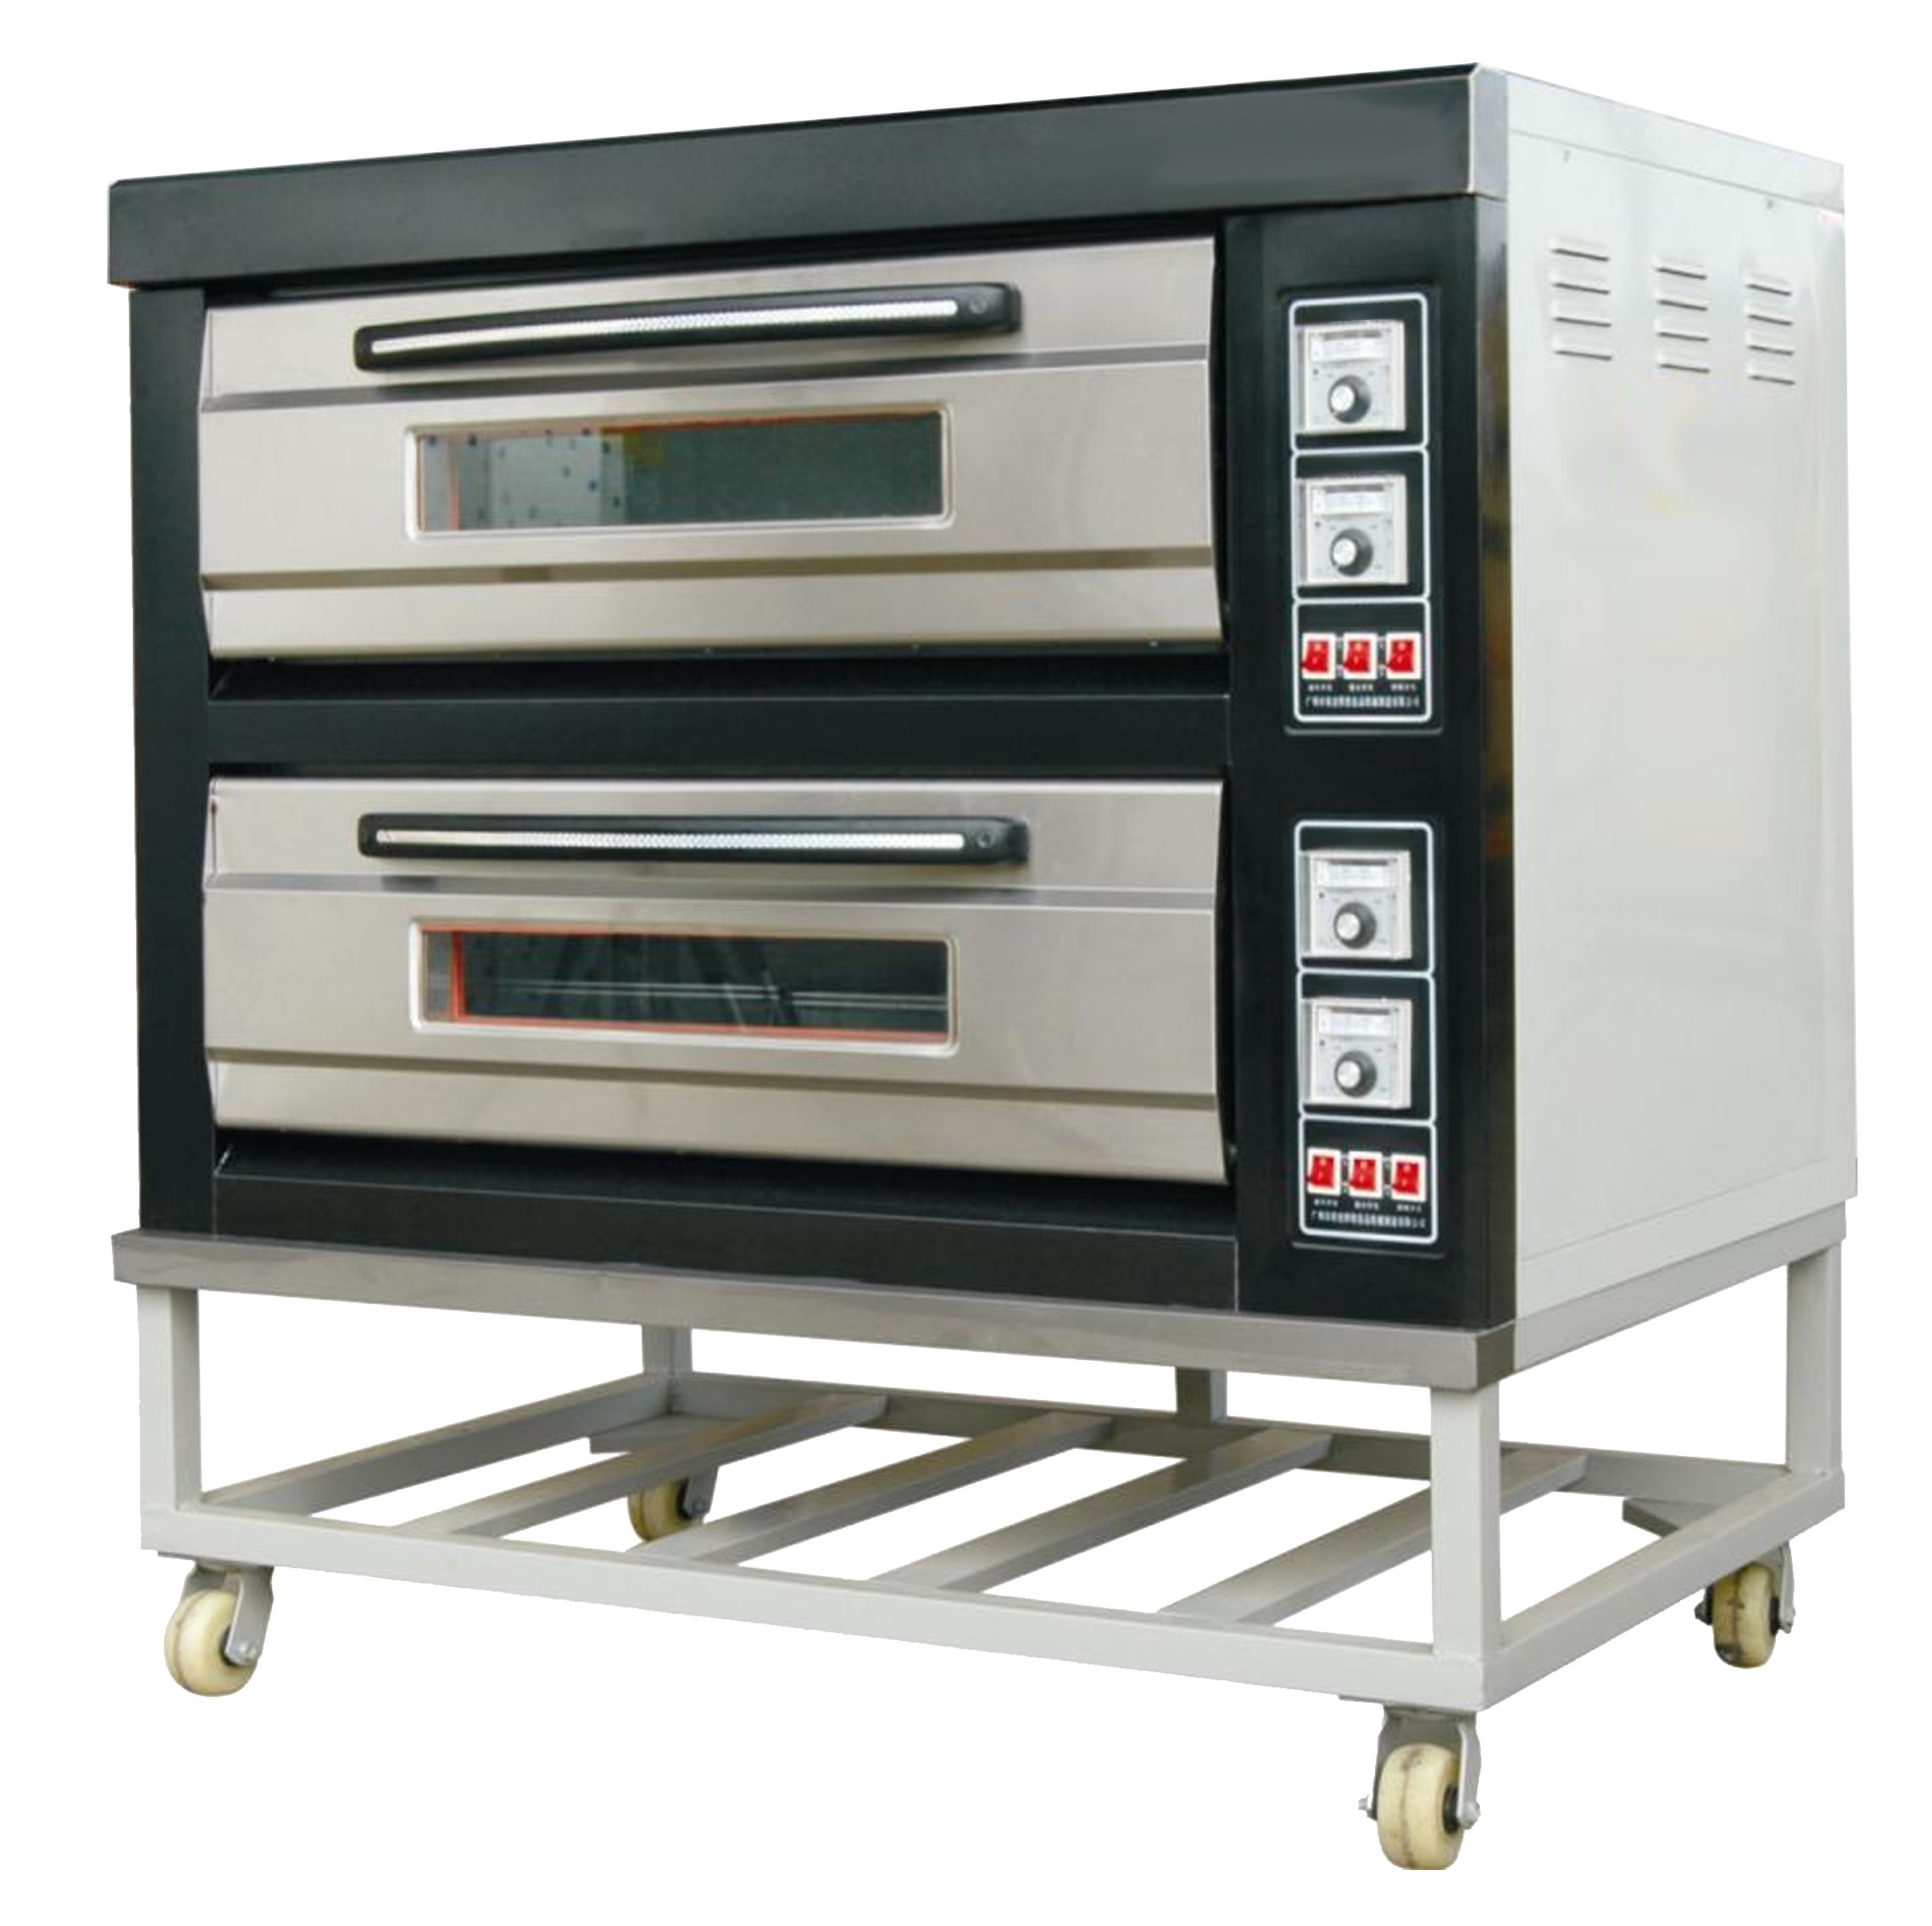 Food Warmer Under Oven ~ Amalfi series electric two deck oven concorde food equipment